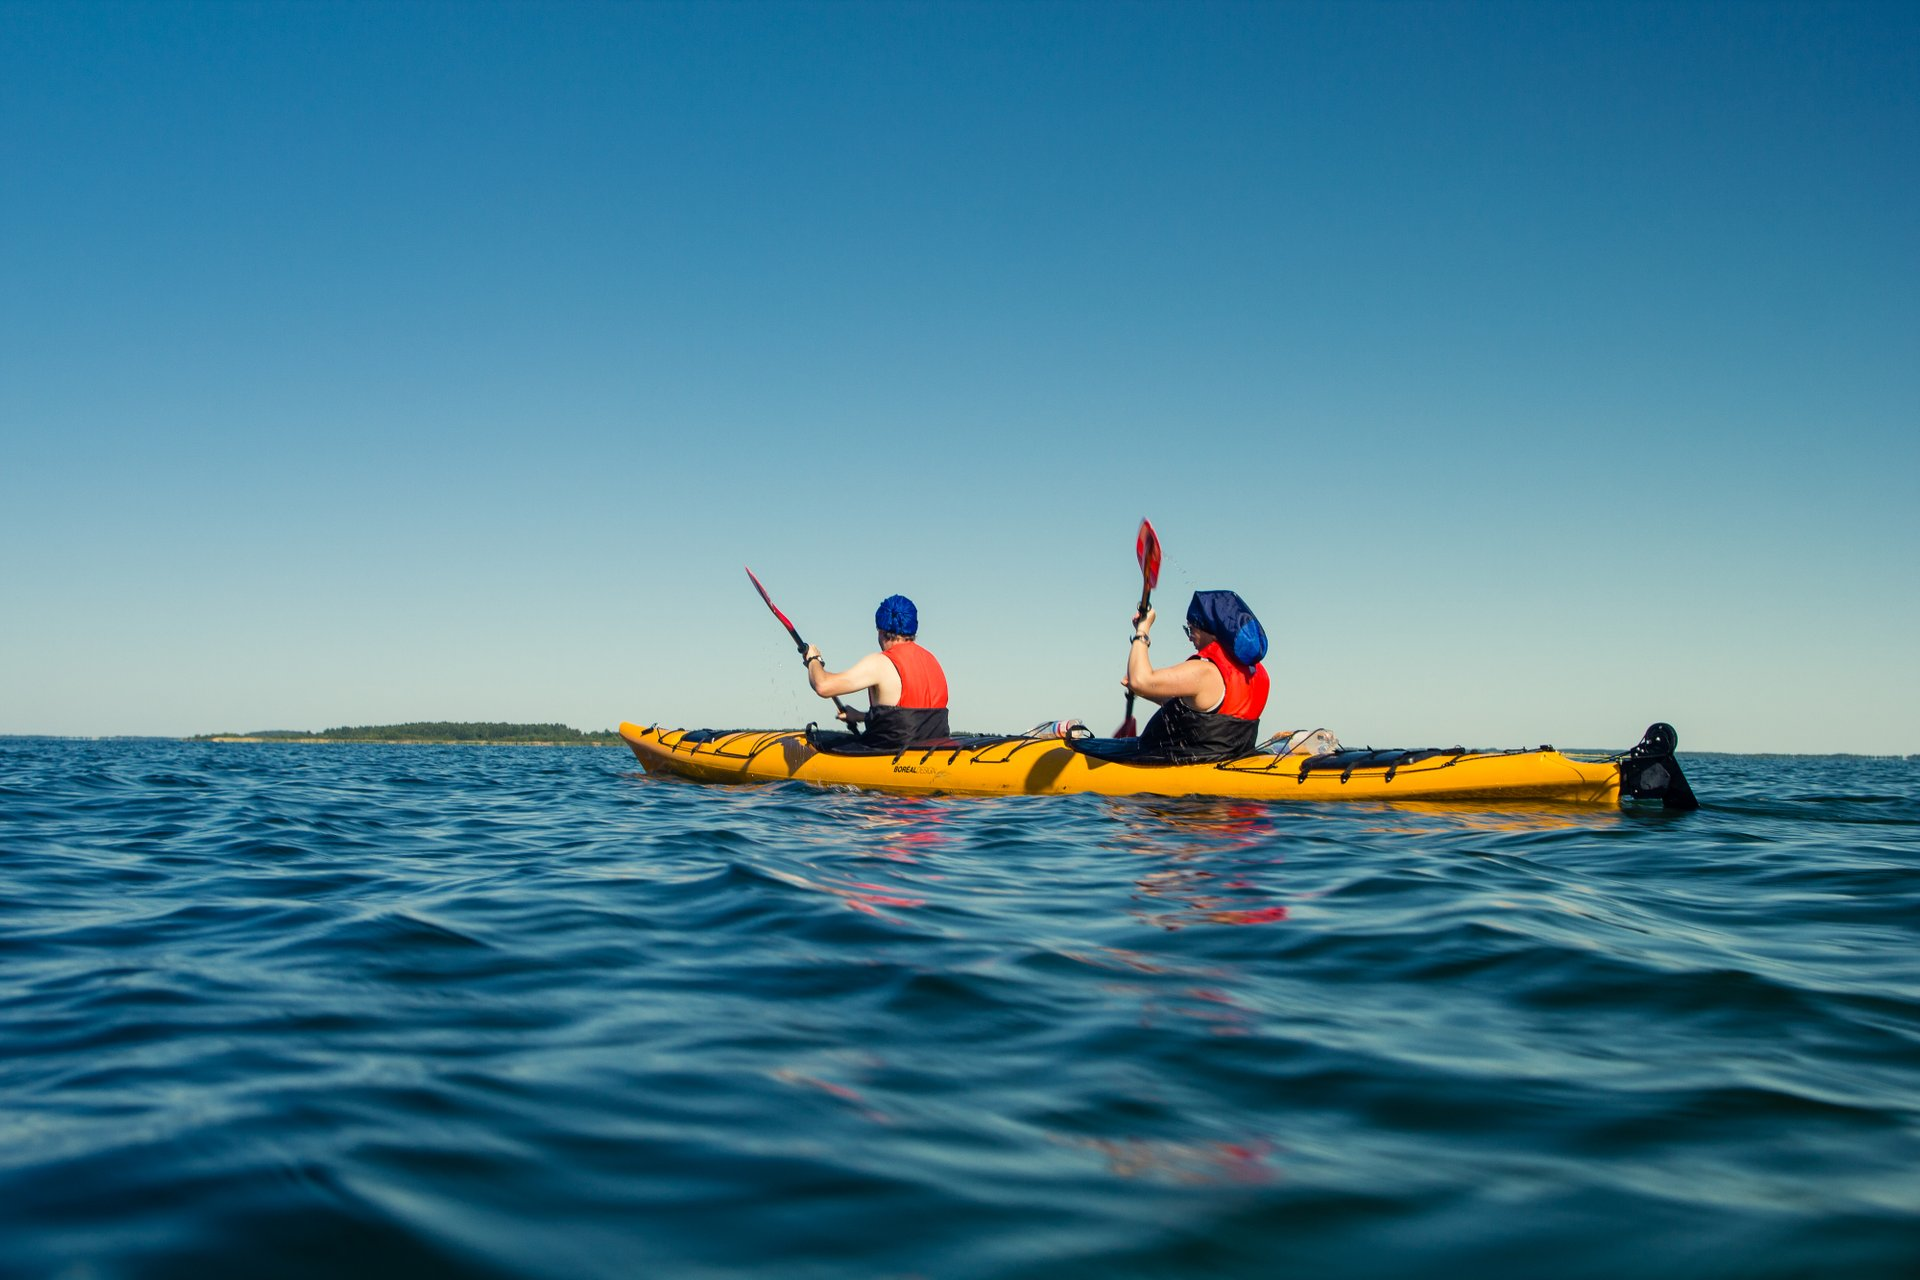 Kayaking and Canoeing in Estonia 2020 - Best Time